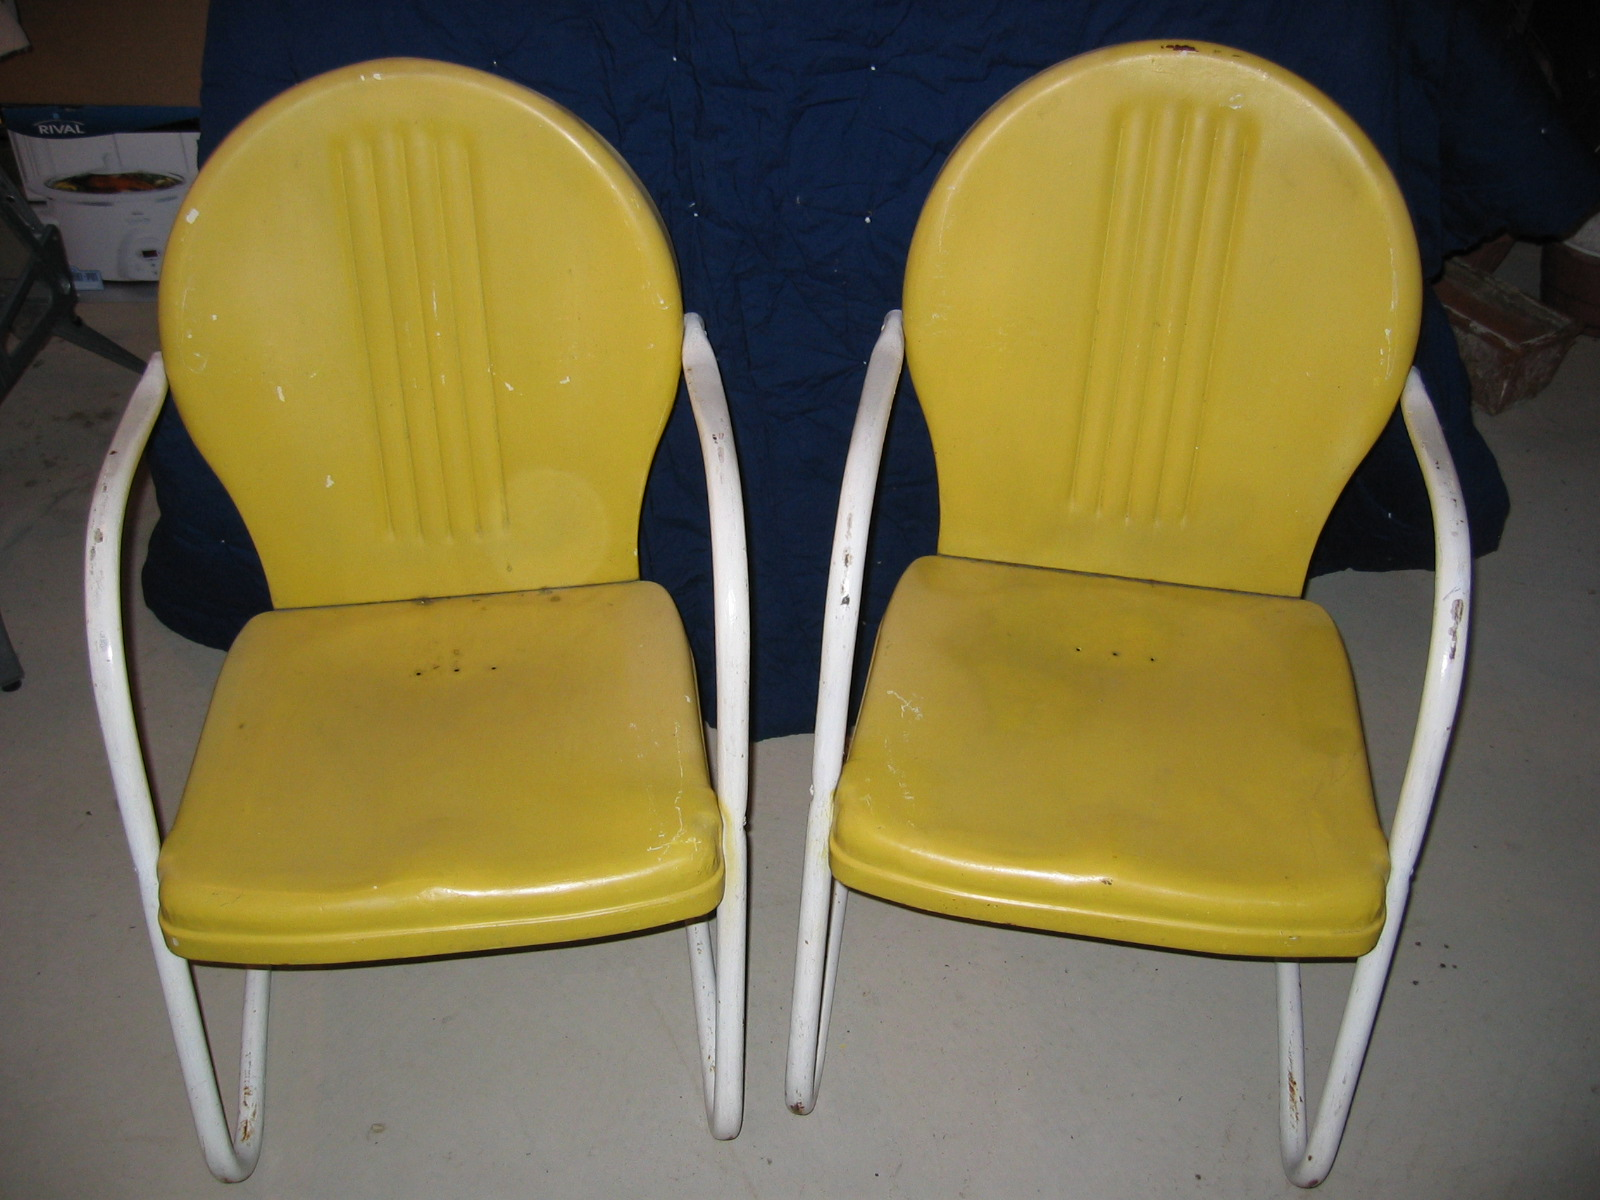 Vintage green metal bouncy chair and yellow ones ...